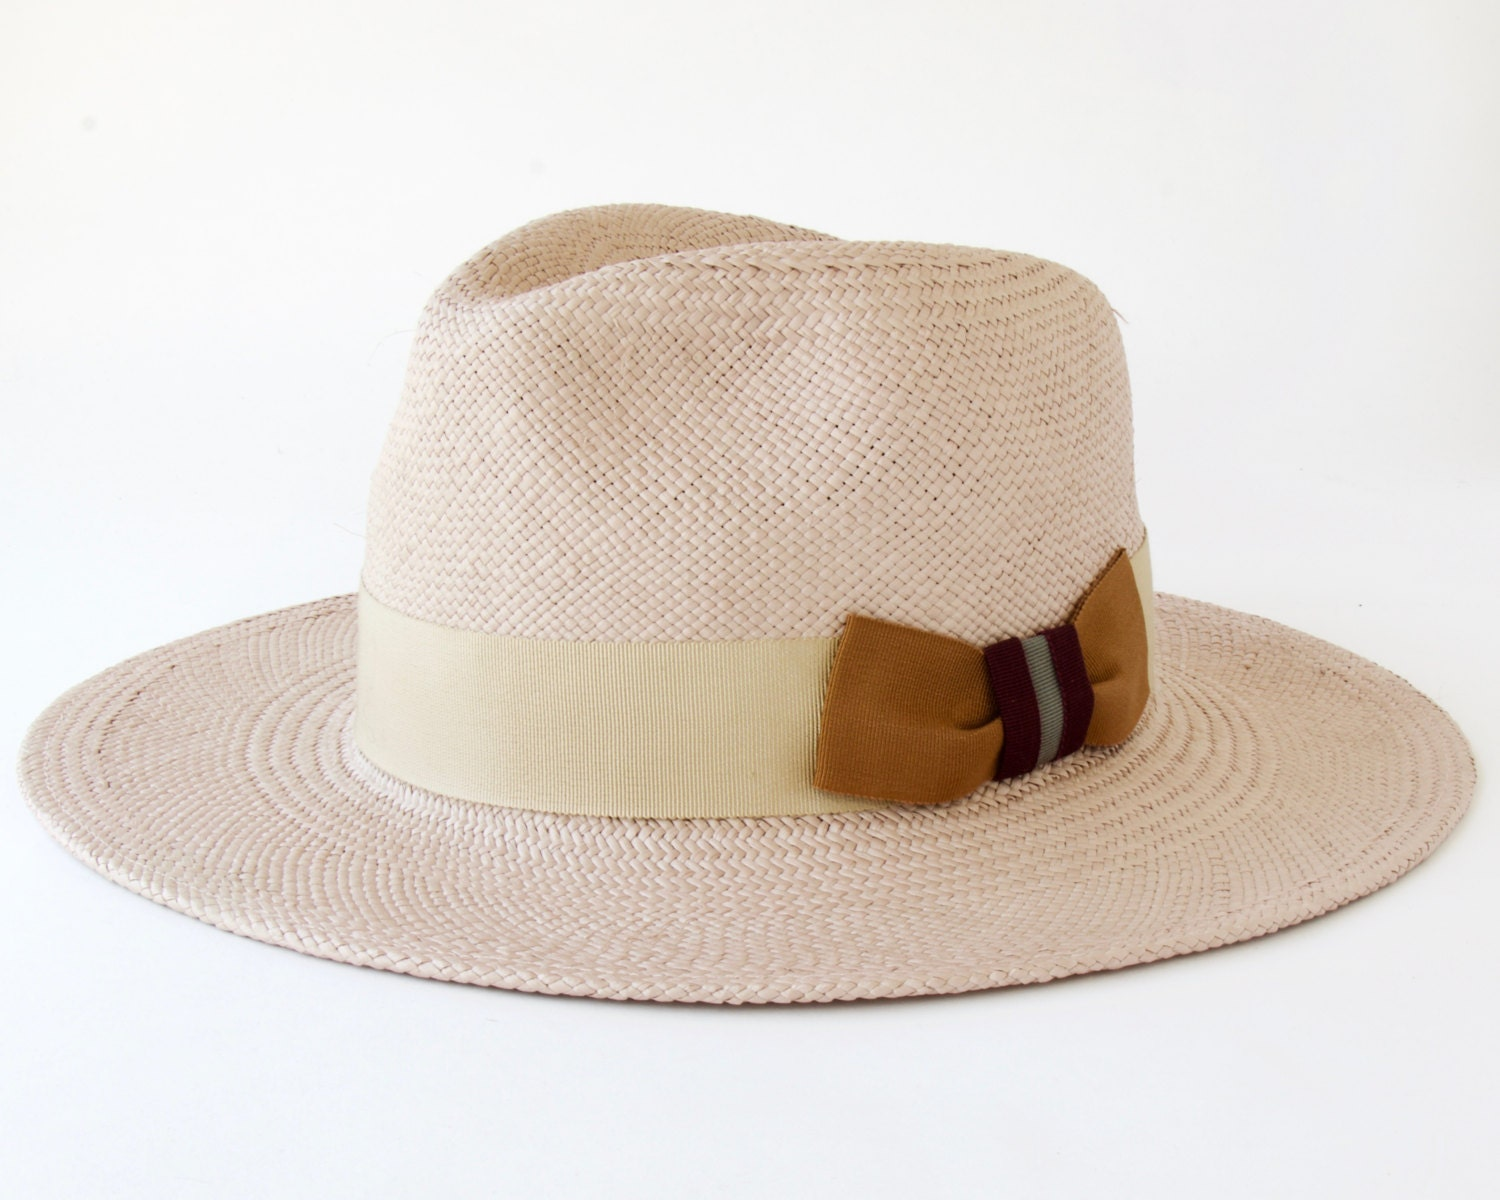 Find great deals on eBay for womens straw fedora hat. Shop with confidence.